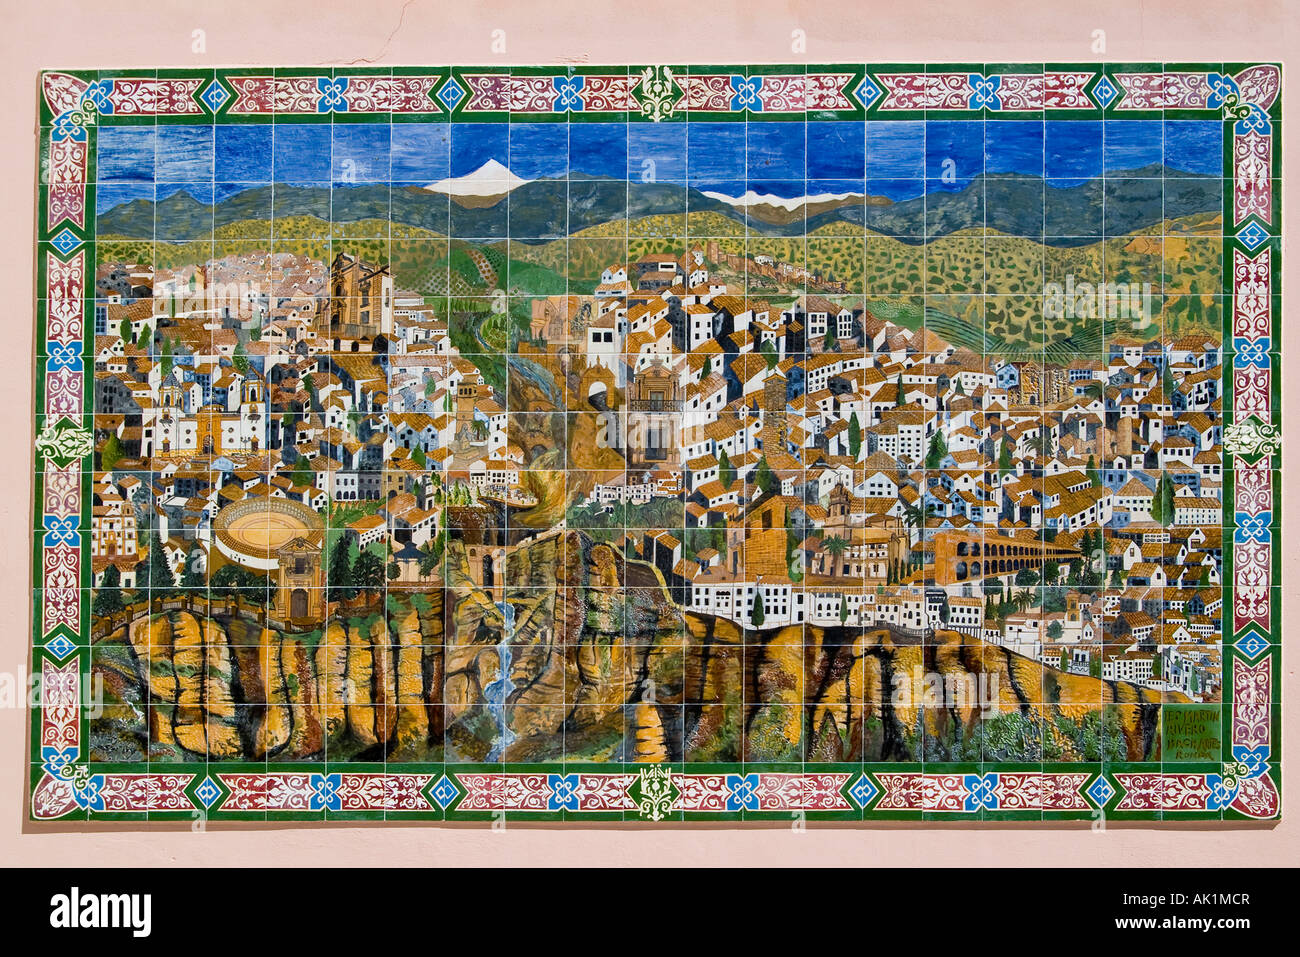 Tiled pictorial map of Ronda, Andalucia, Spain - Stock Image